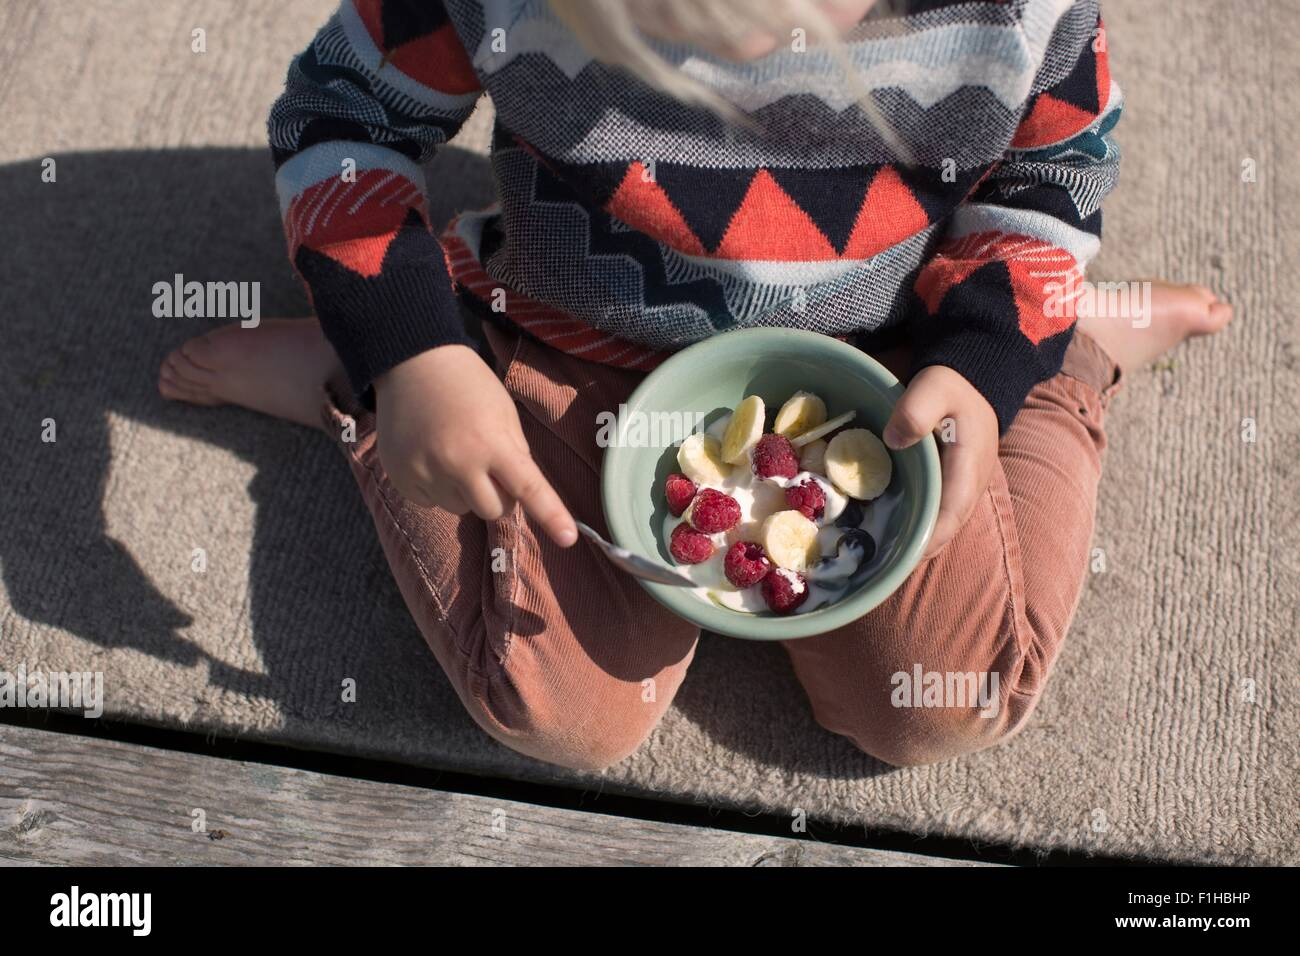 Boy holding bowl of fruit, high angle - Stock Image